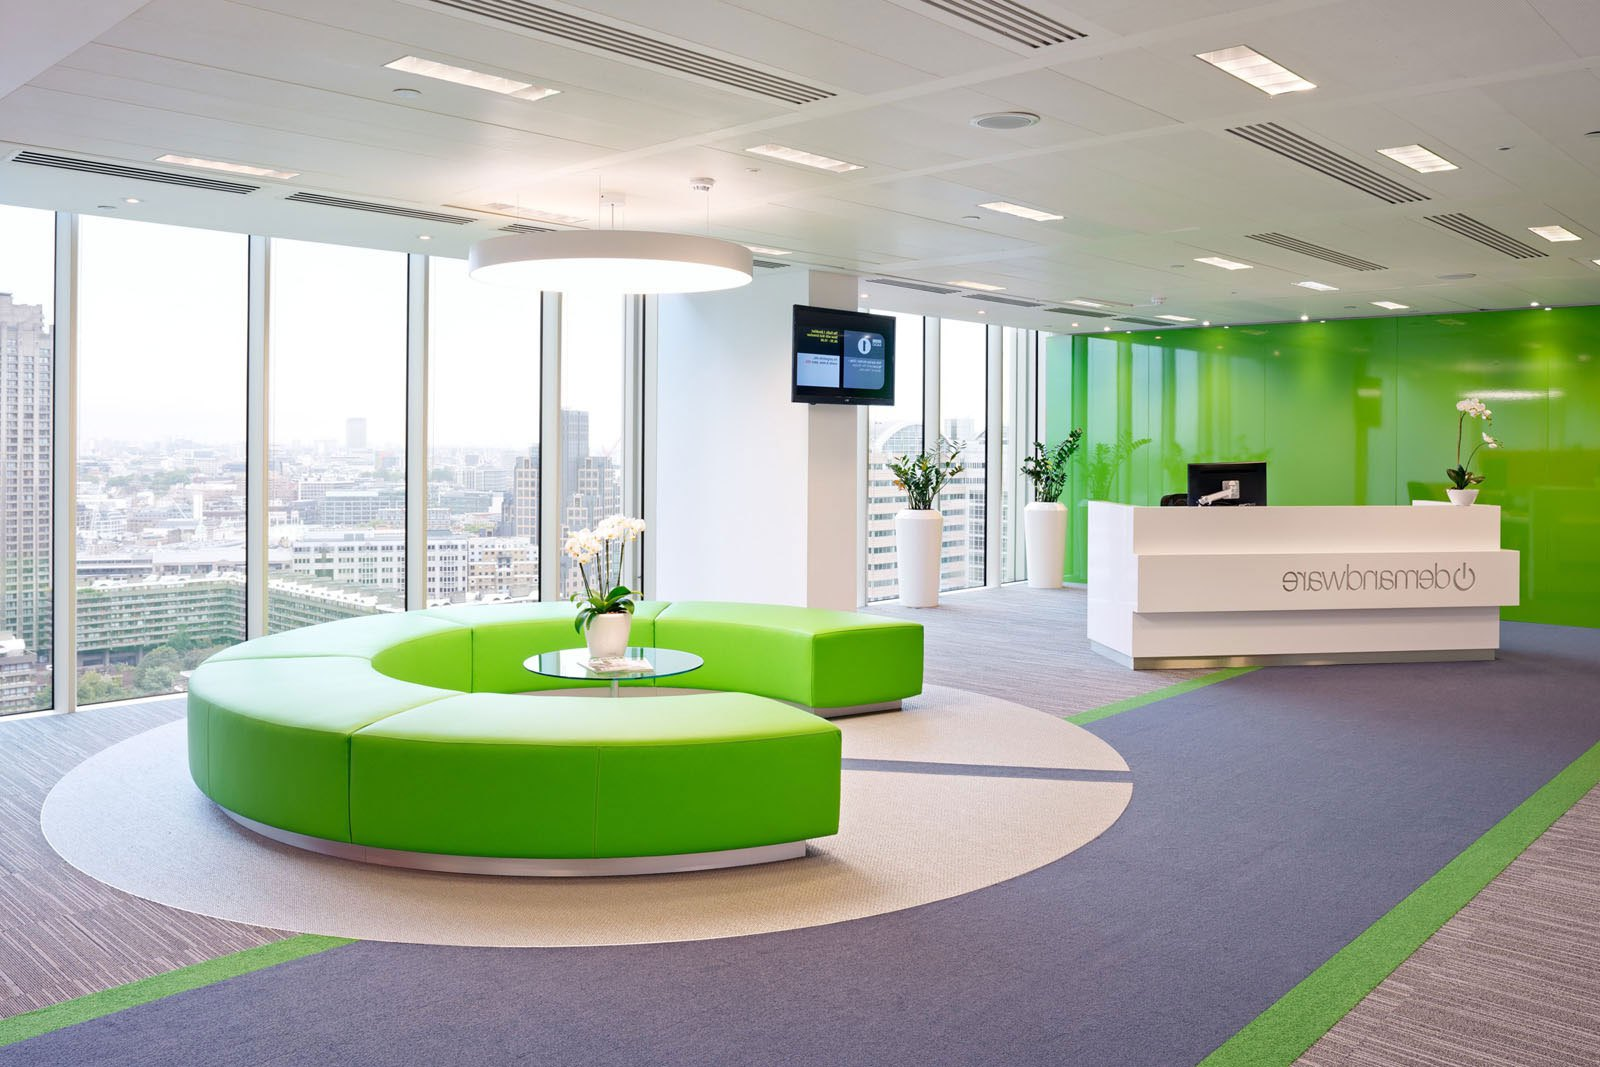 Demandware-london-office-1